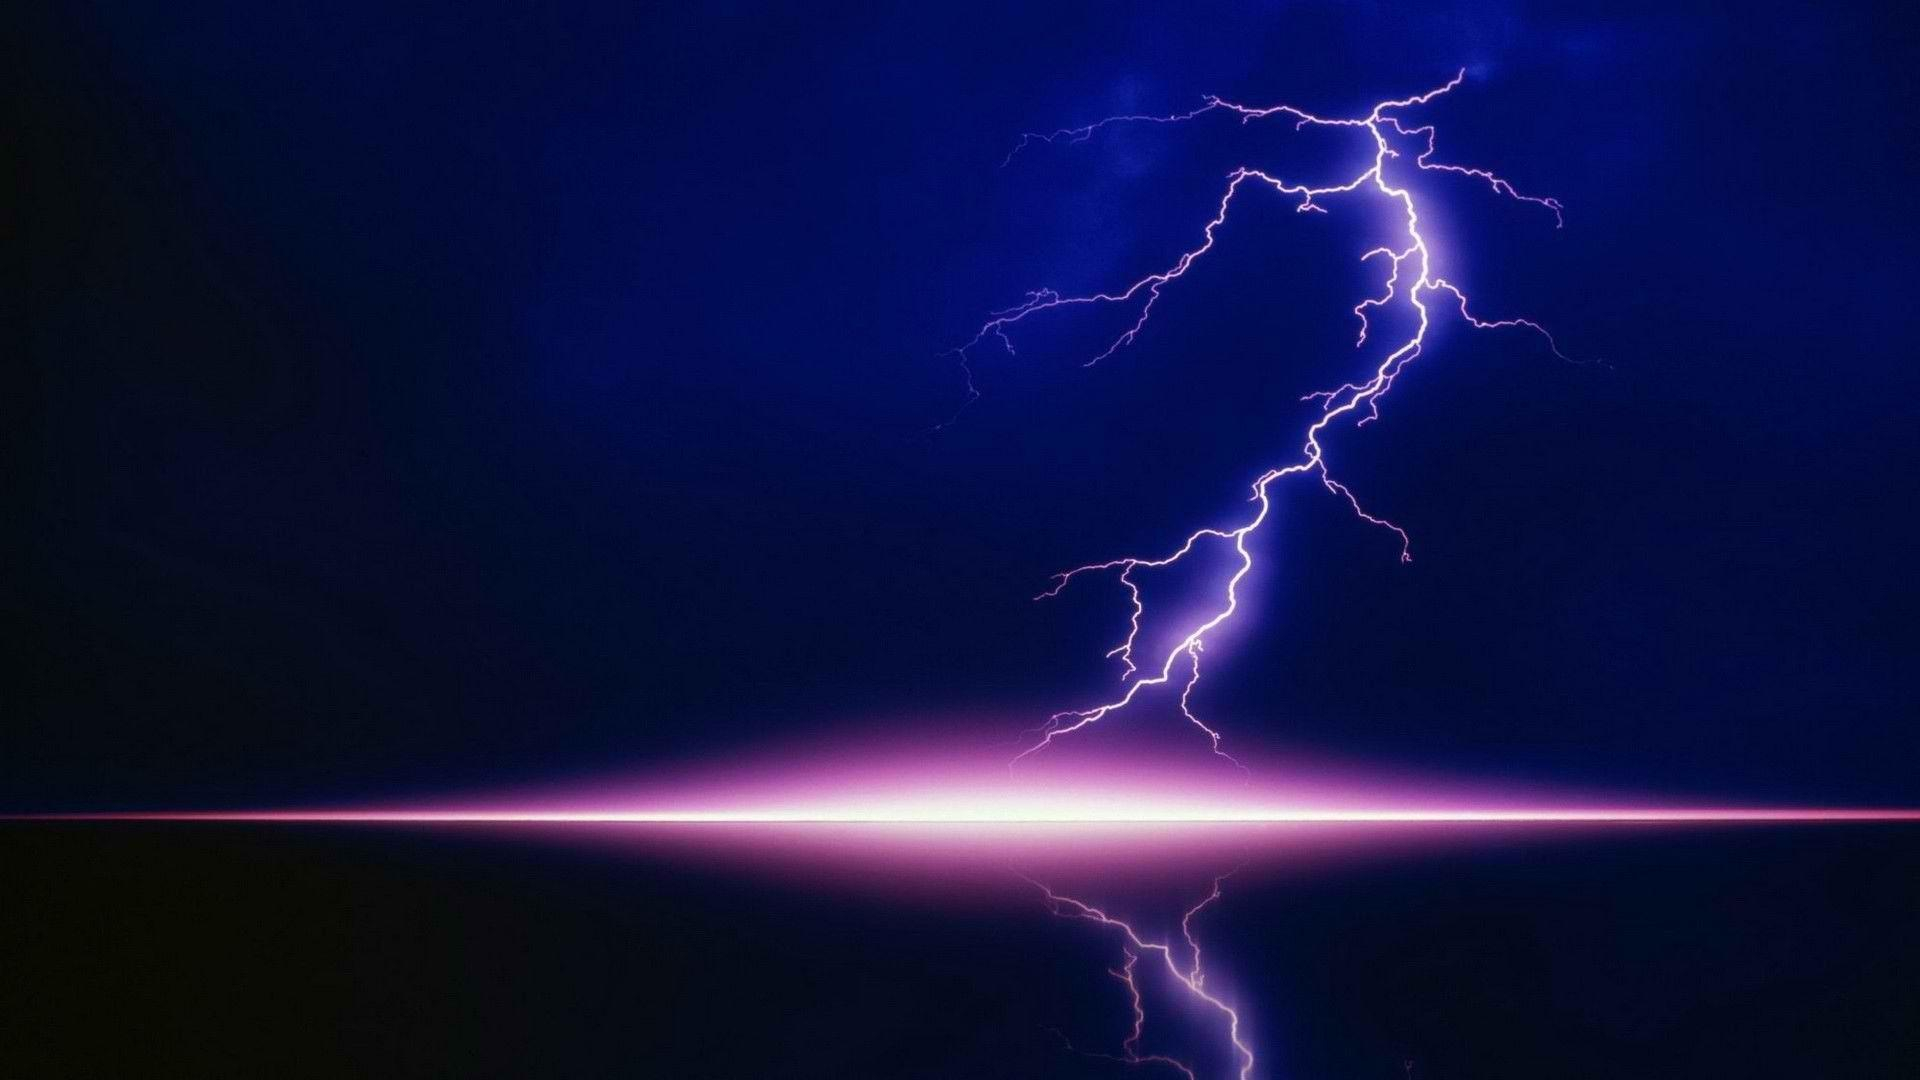 lightning wallpapers hd wallpaper cave